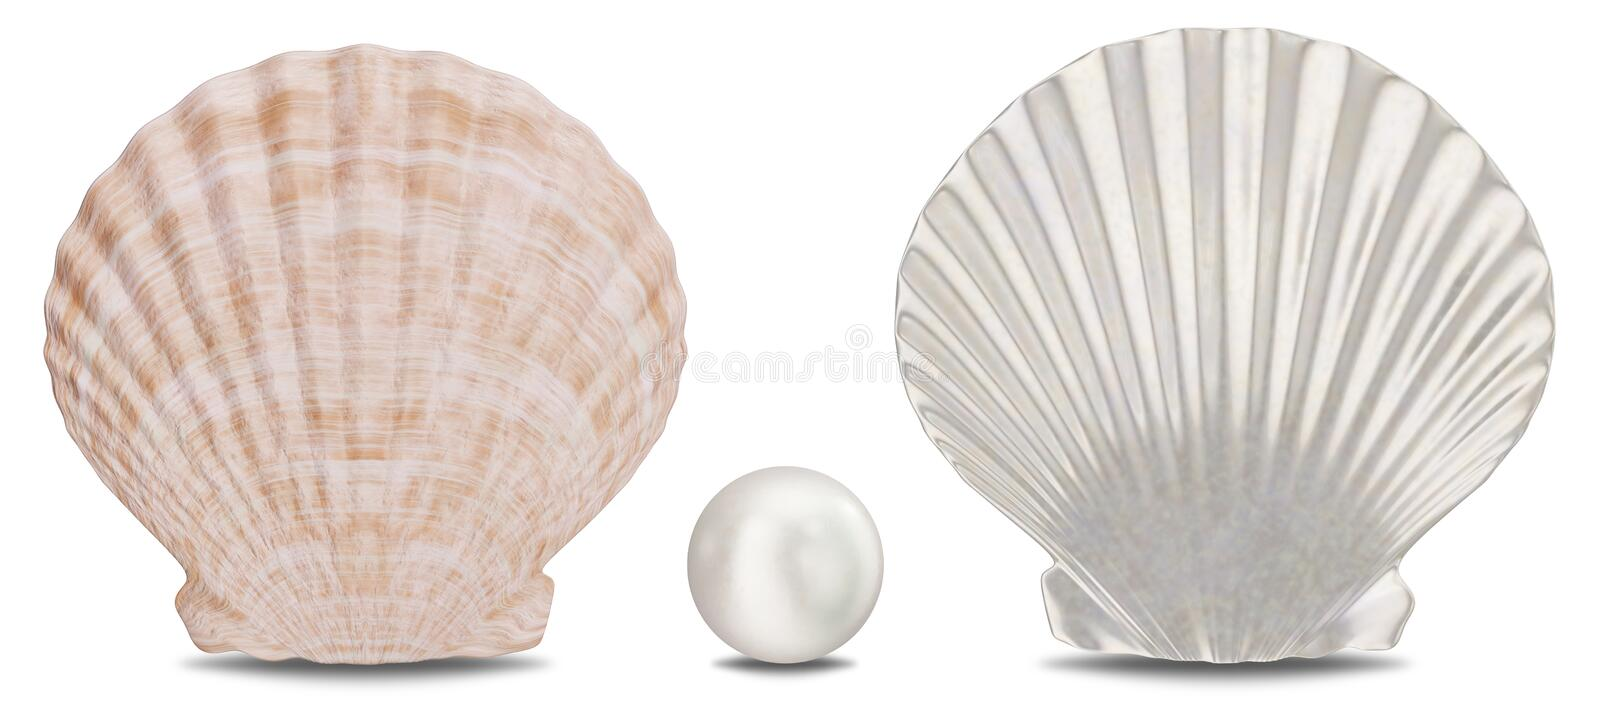 Set of pearls, sea shell, inner and outer side isolated on white background with shadow. Sea shell front view. Gem vector illustration